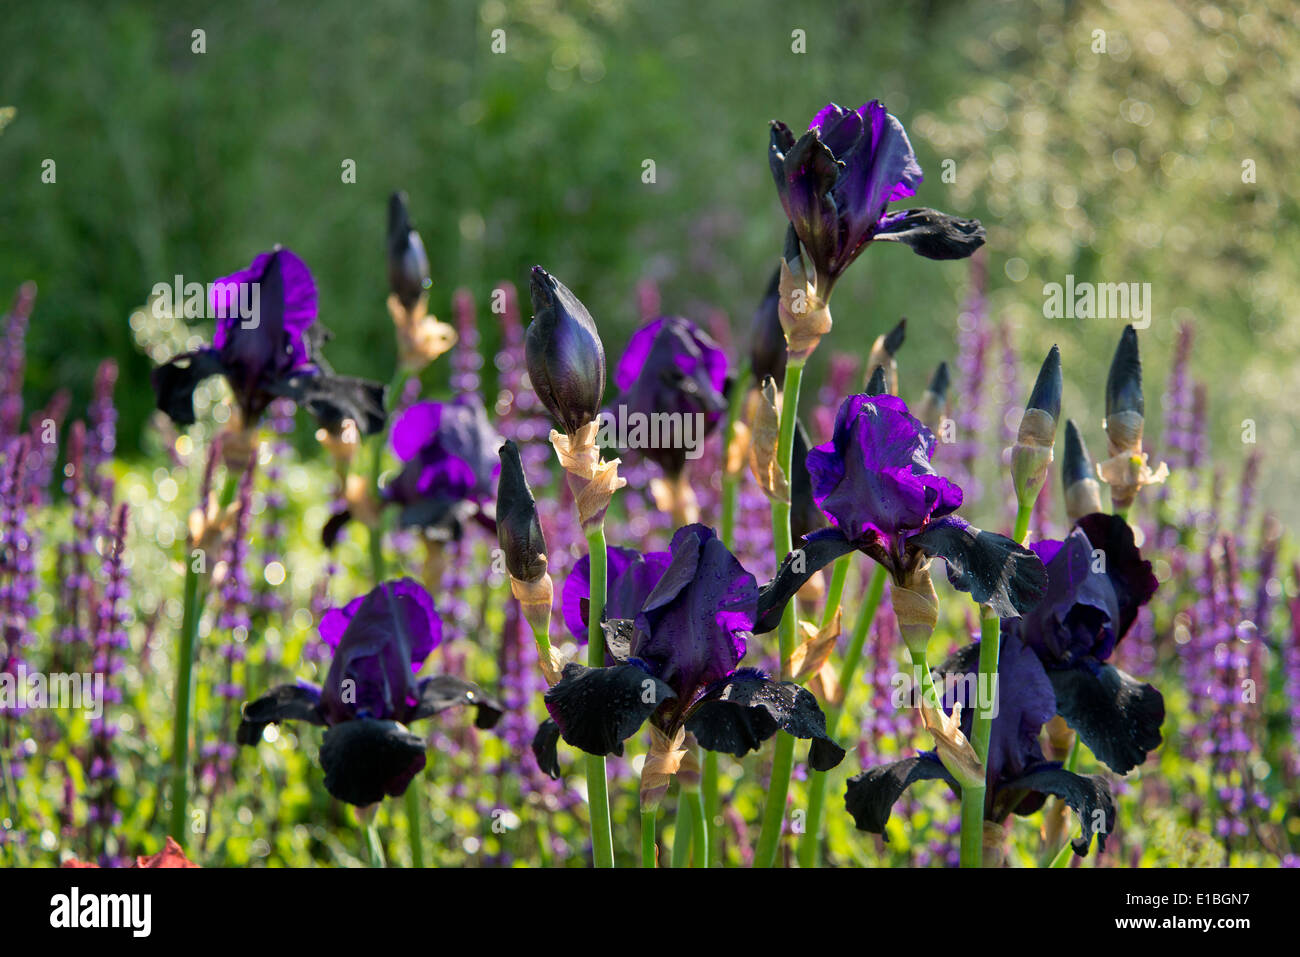 Iris germanica 'Deep Black' in the Cloudy Bay Garden at the RHS Chelsea Flower Show 2014, London UK - Stock Image